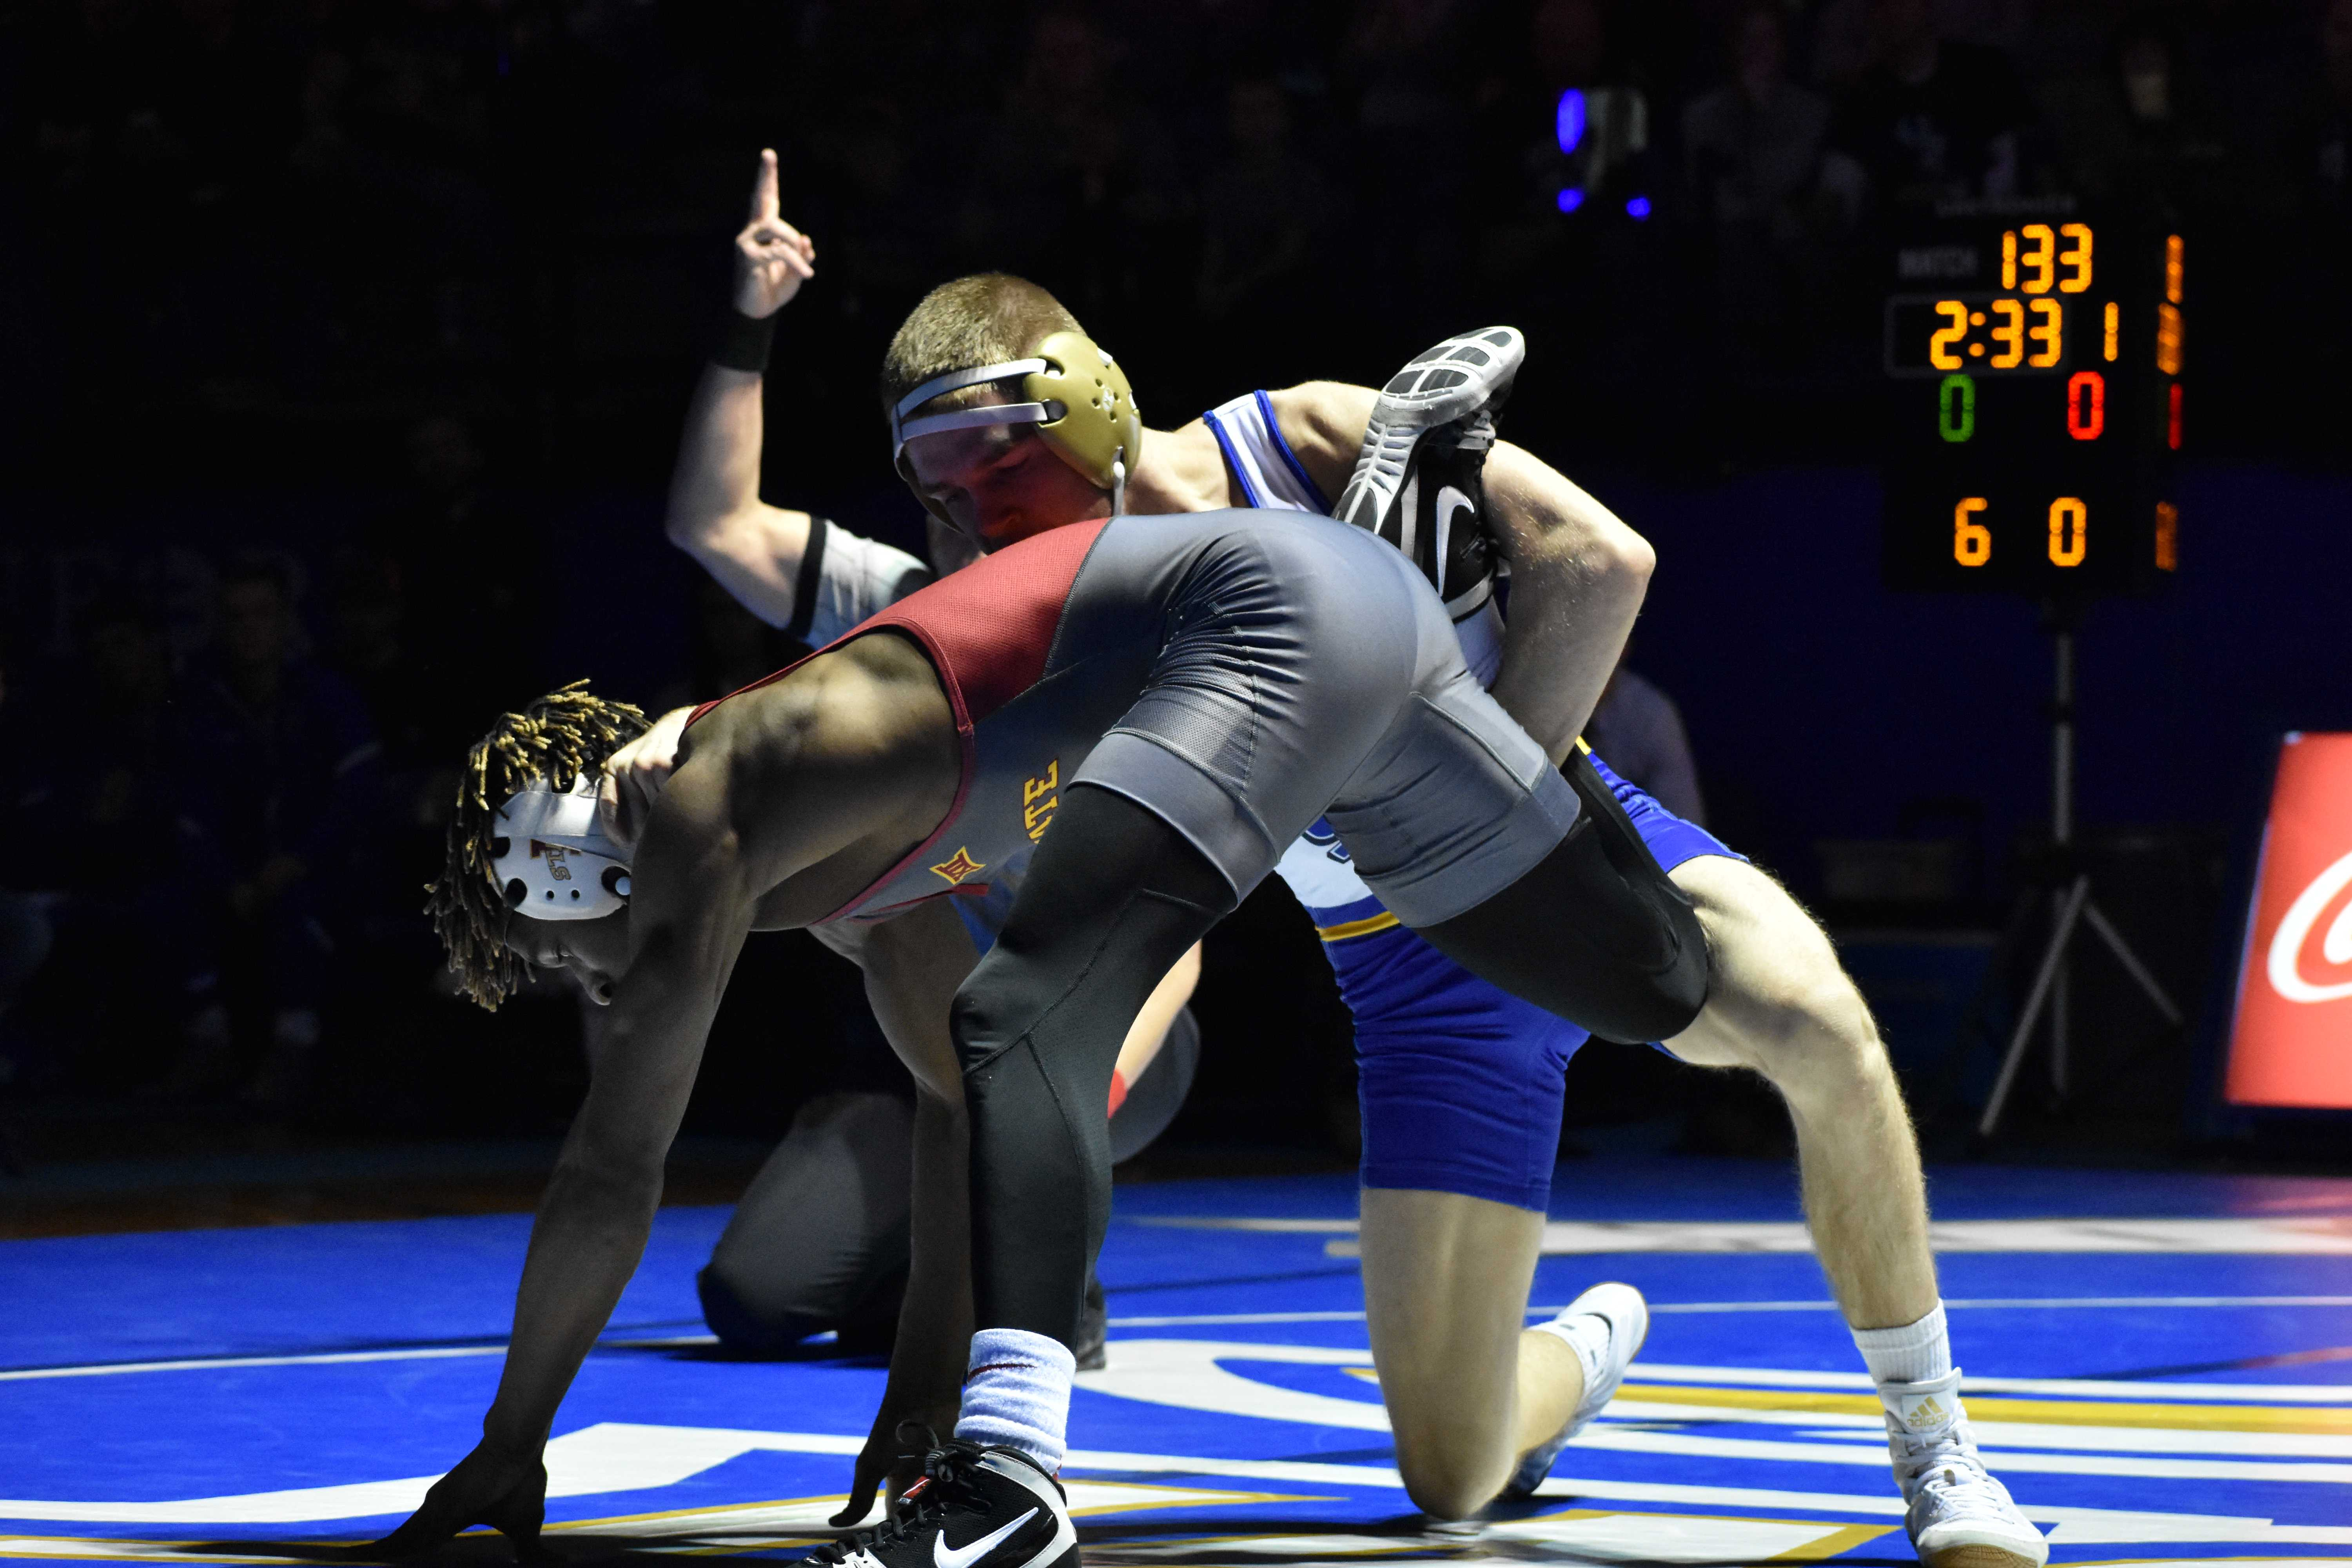 ABBY FULLENKAMP Junior Seth Gross wrestles against Iowa State Markus Simmons during the 133-pound bout Feb. 4. Gross defeated Simmons with a major decision of 12-3. The Jacks host NDSU at 7pm Friday, Feb. 16 in Frost Arena.